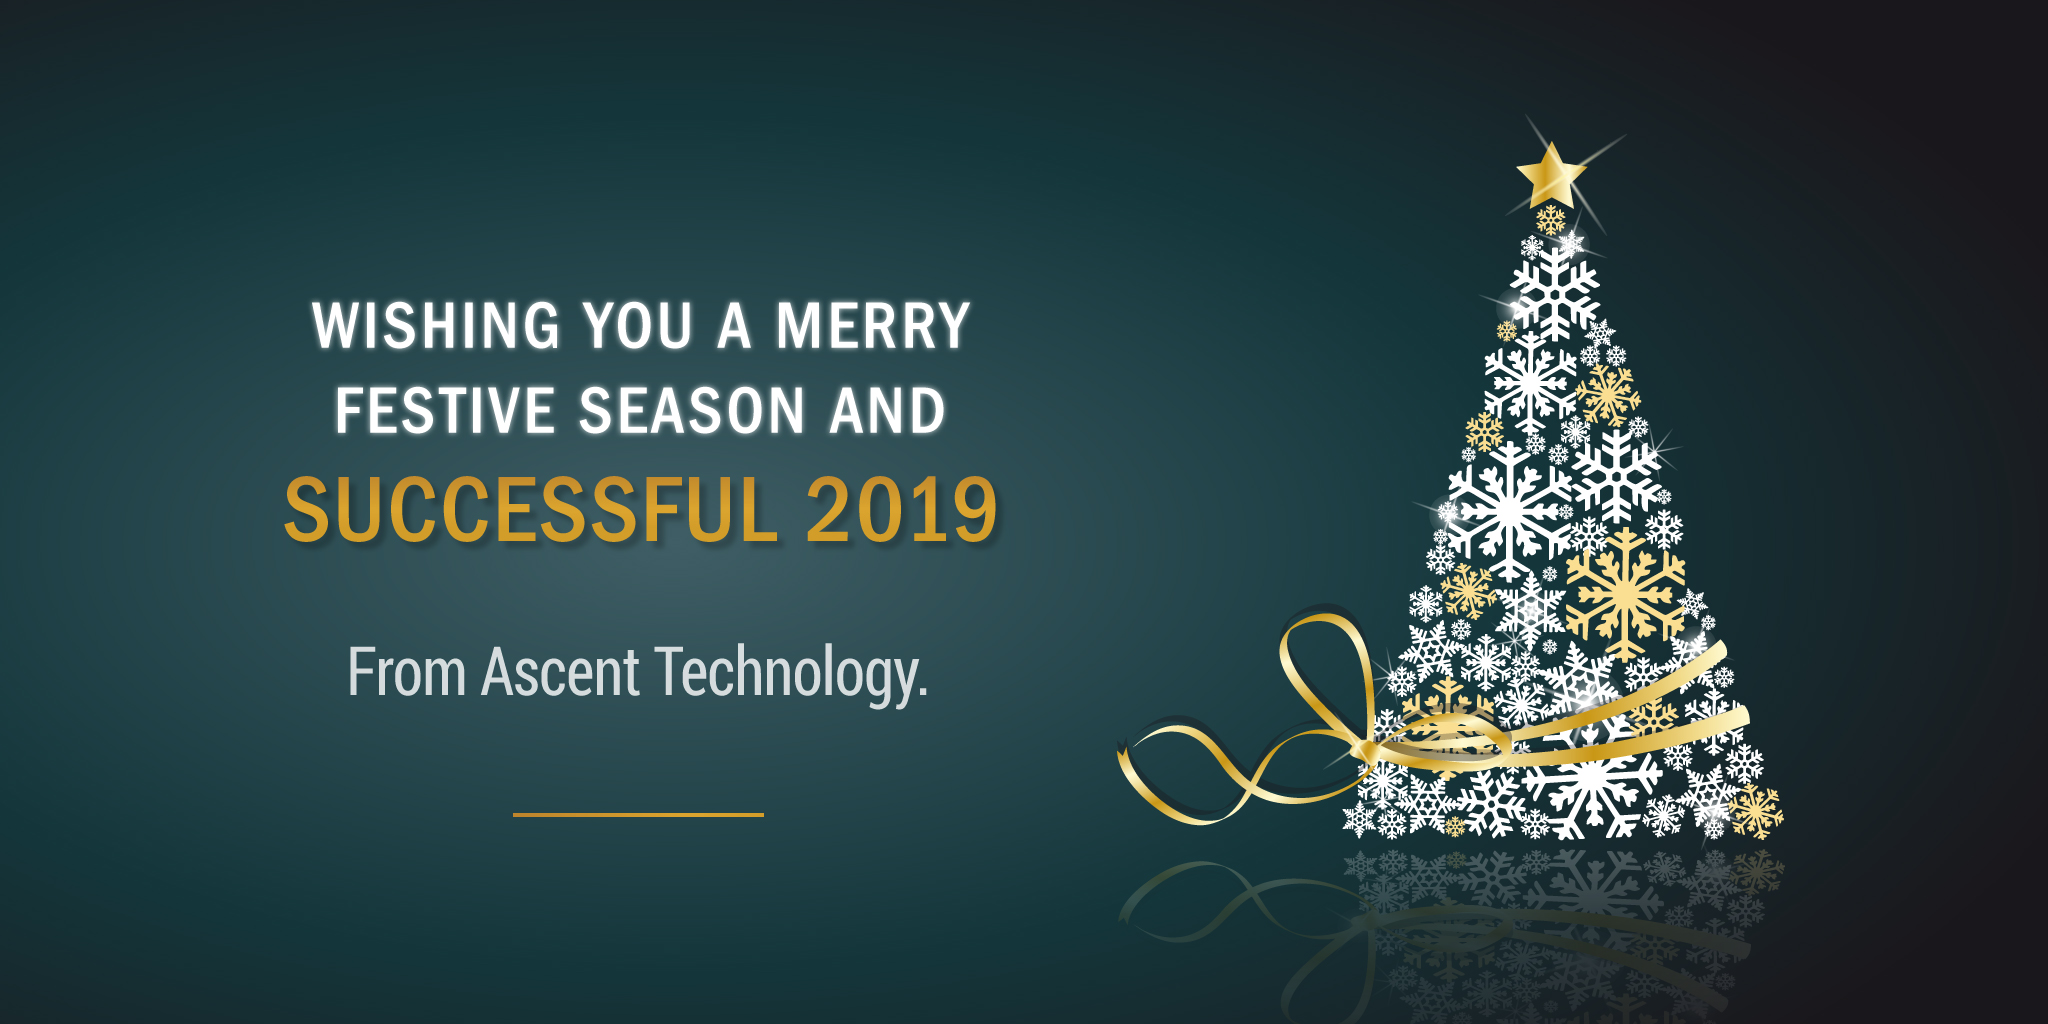 Seasons Greetings >> Season S Greetings From The Ascent Technology Team